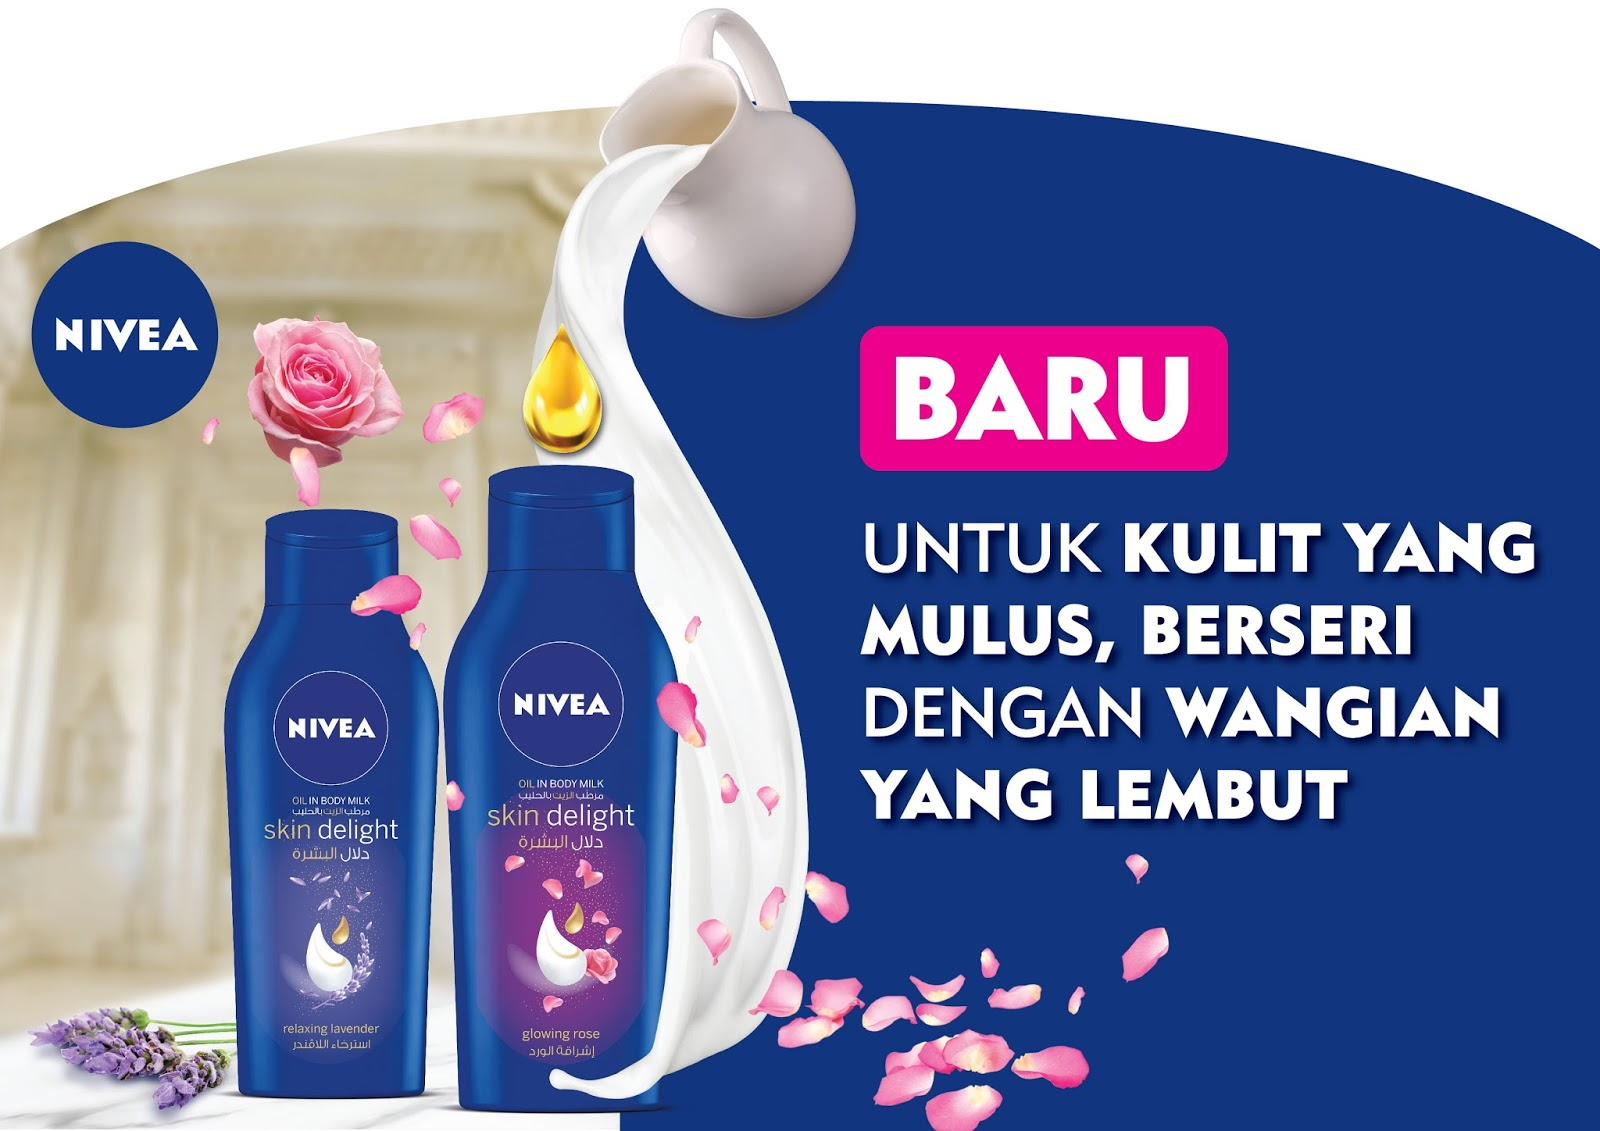 nivea skin delight body milk, nivea losyen baru, harga promosi, glowing rose, relaxing lavender